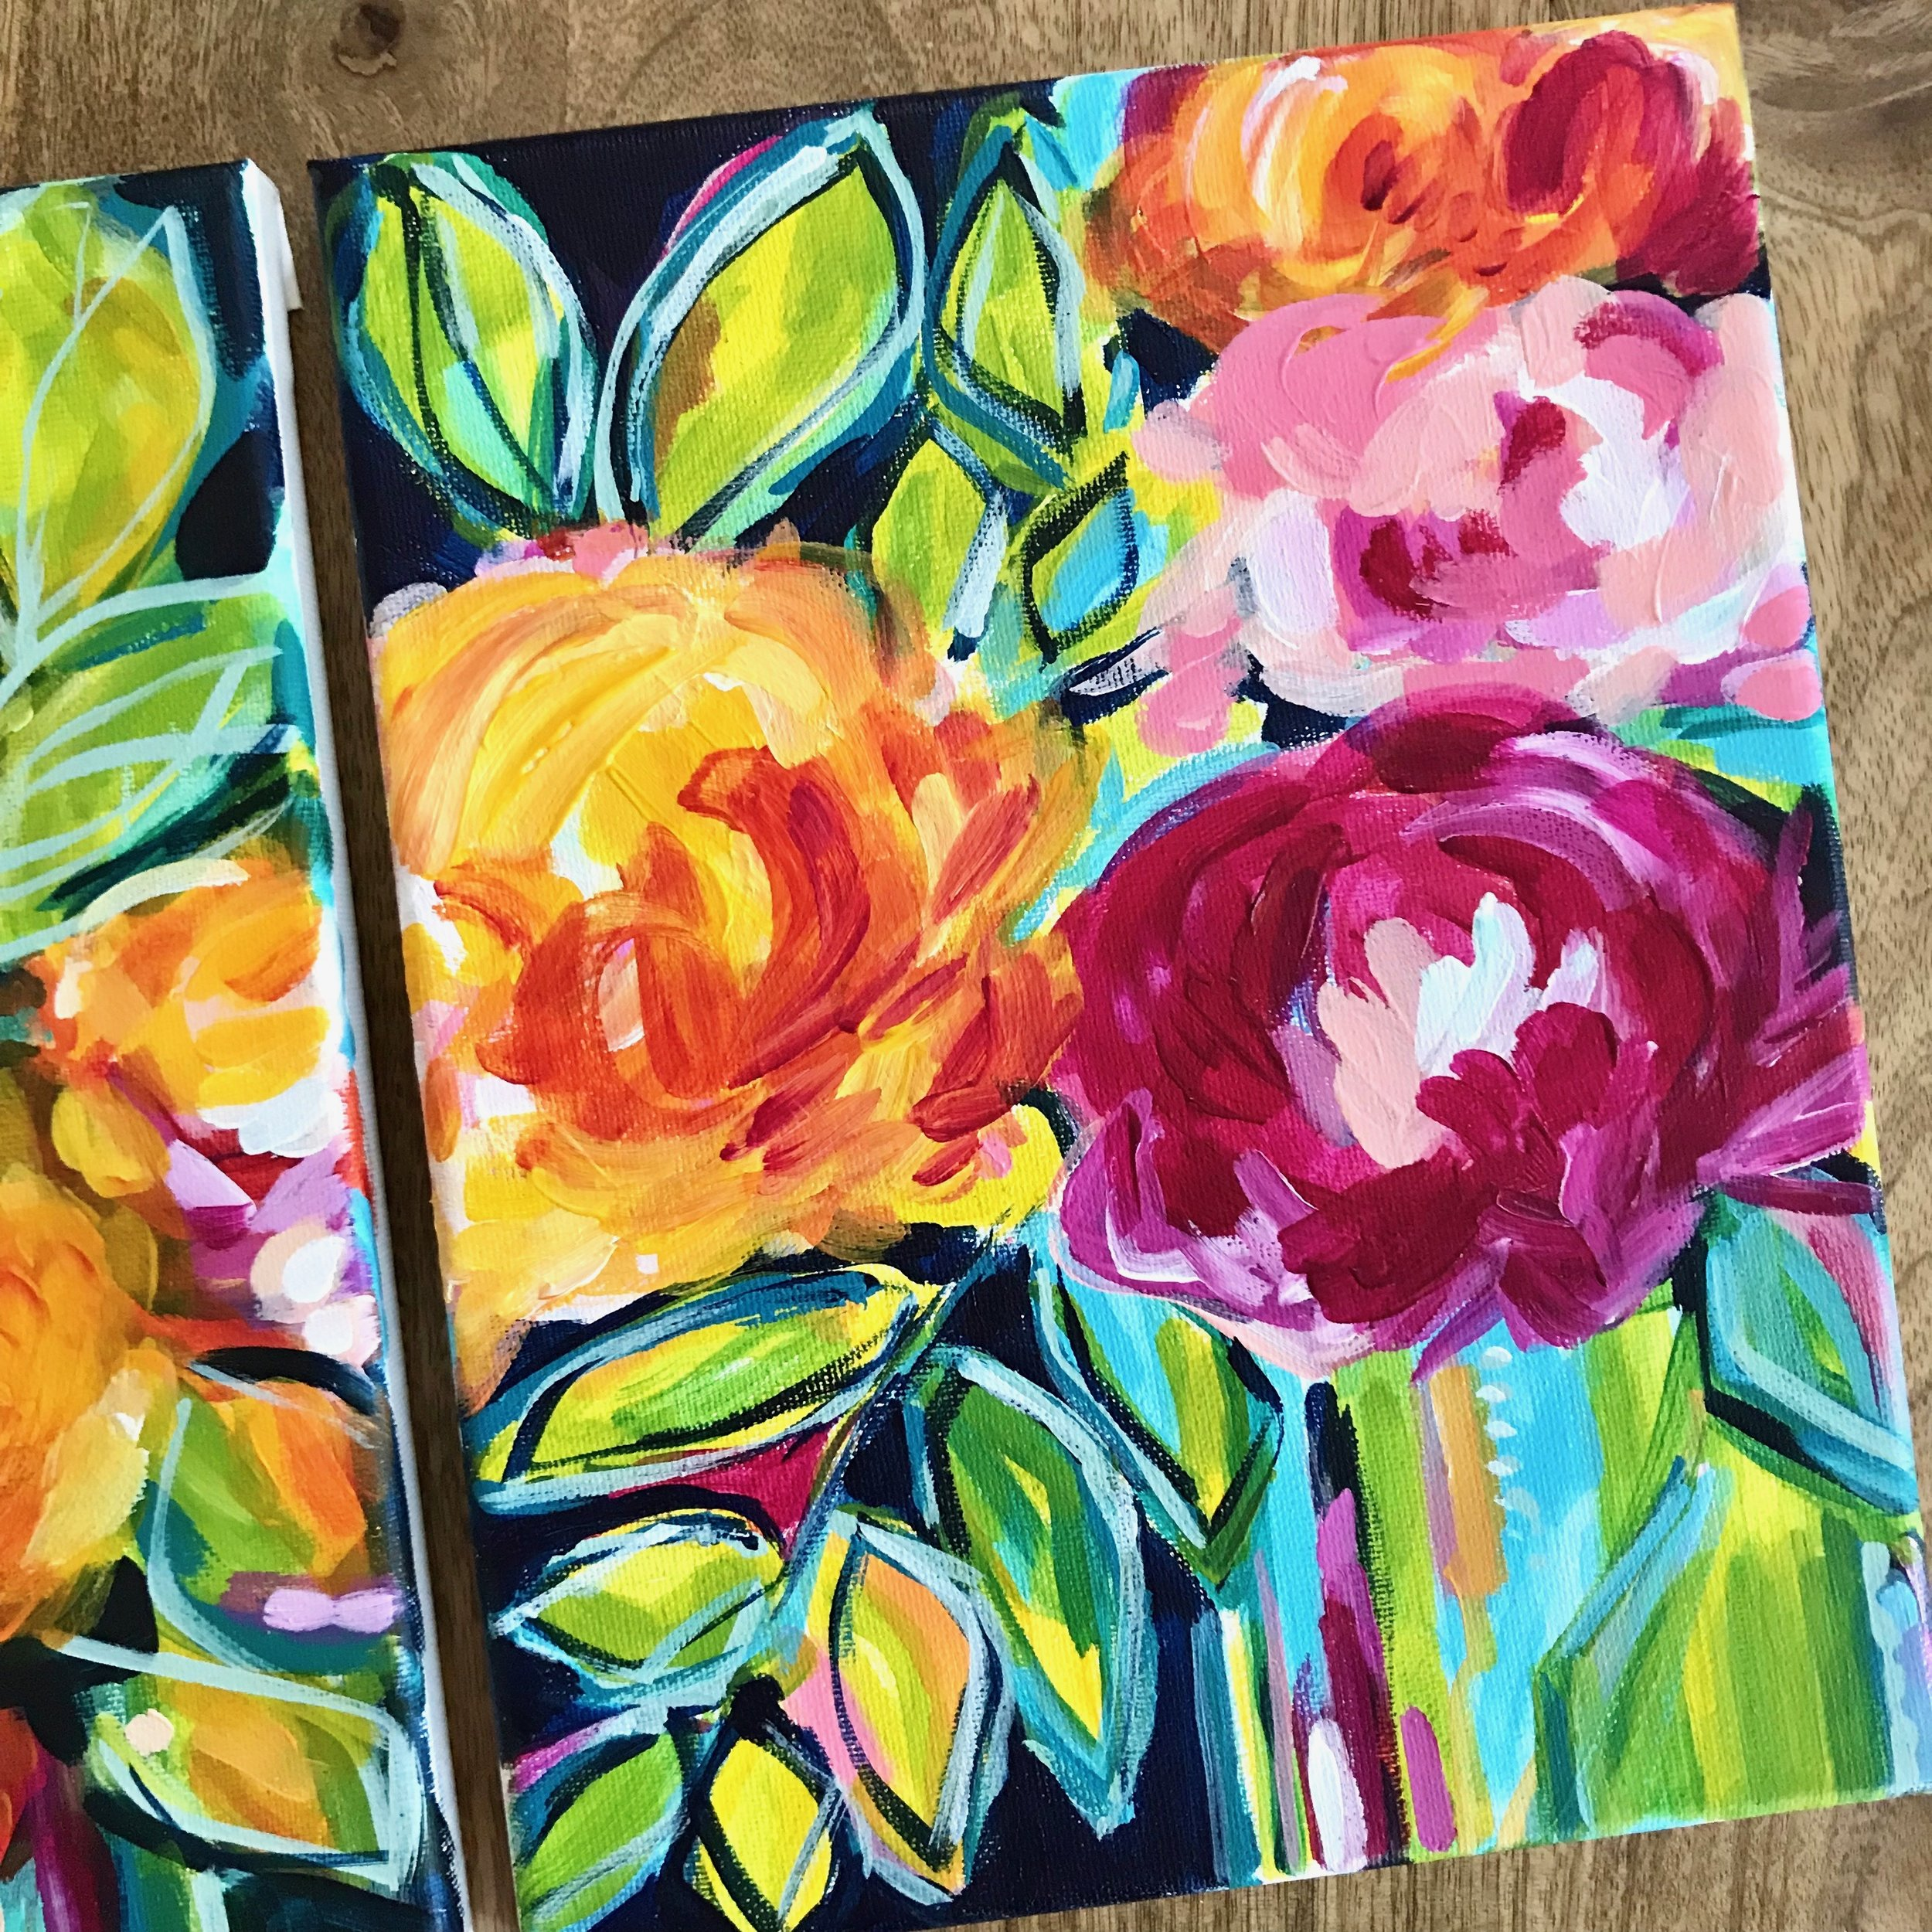 how_to_paint_abstract_flowers_2.JPG